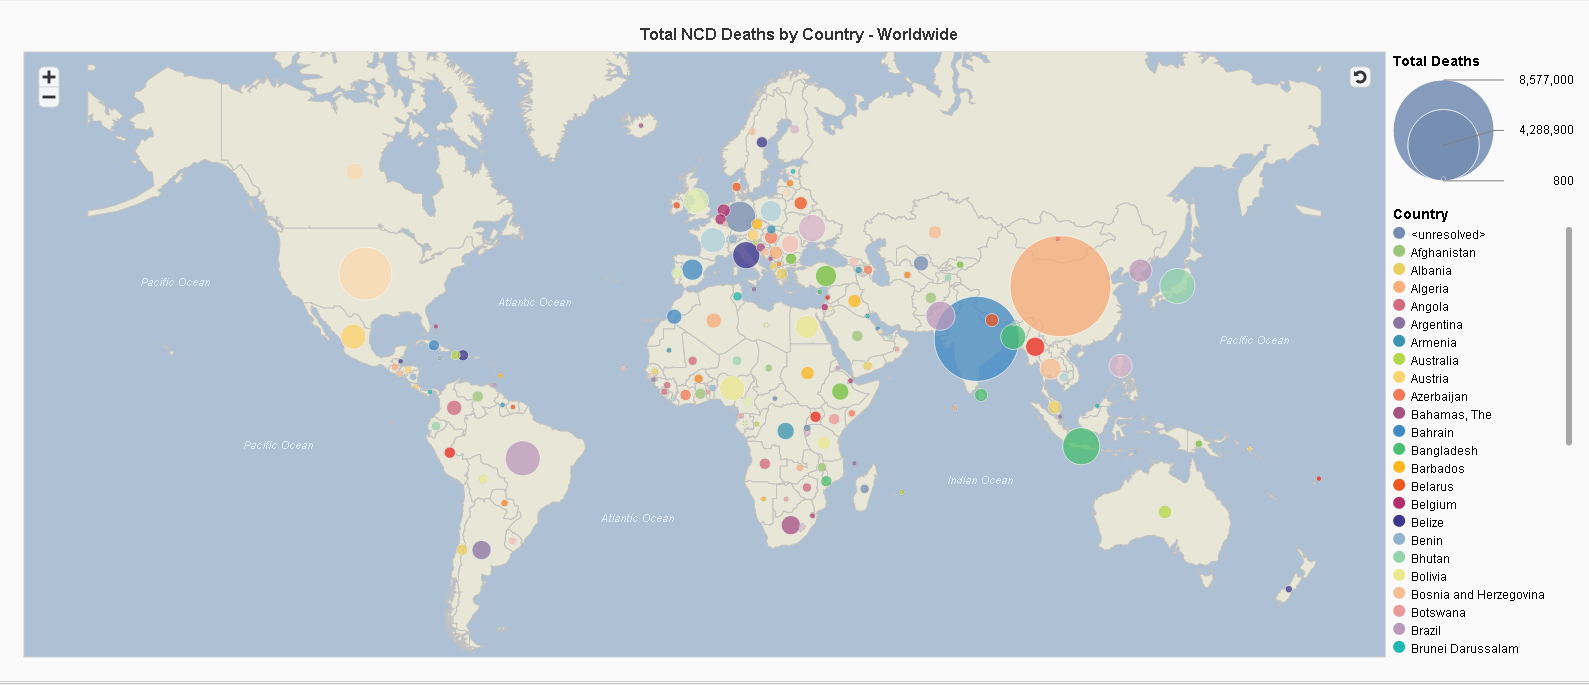 Total NCD Deaths by Country - Worldwide.png